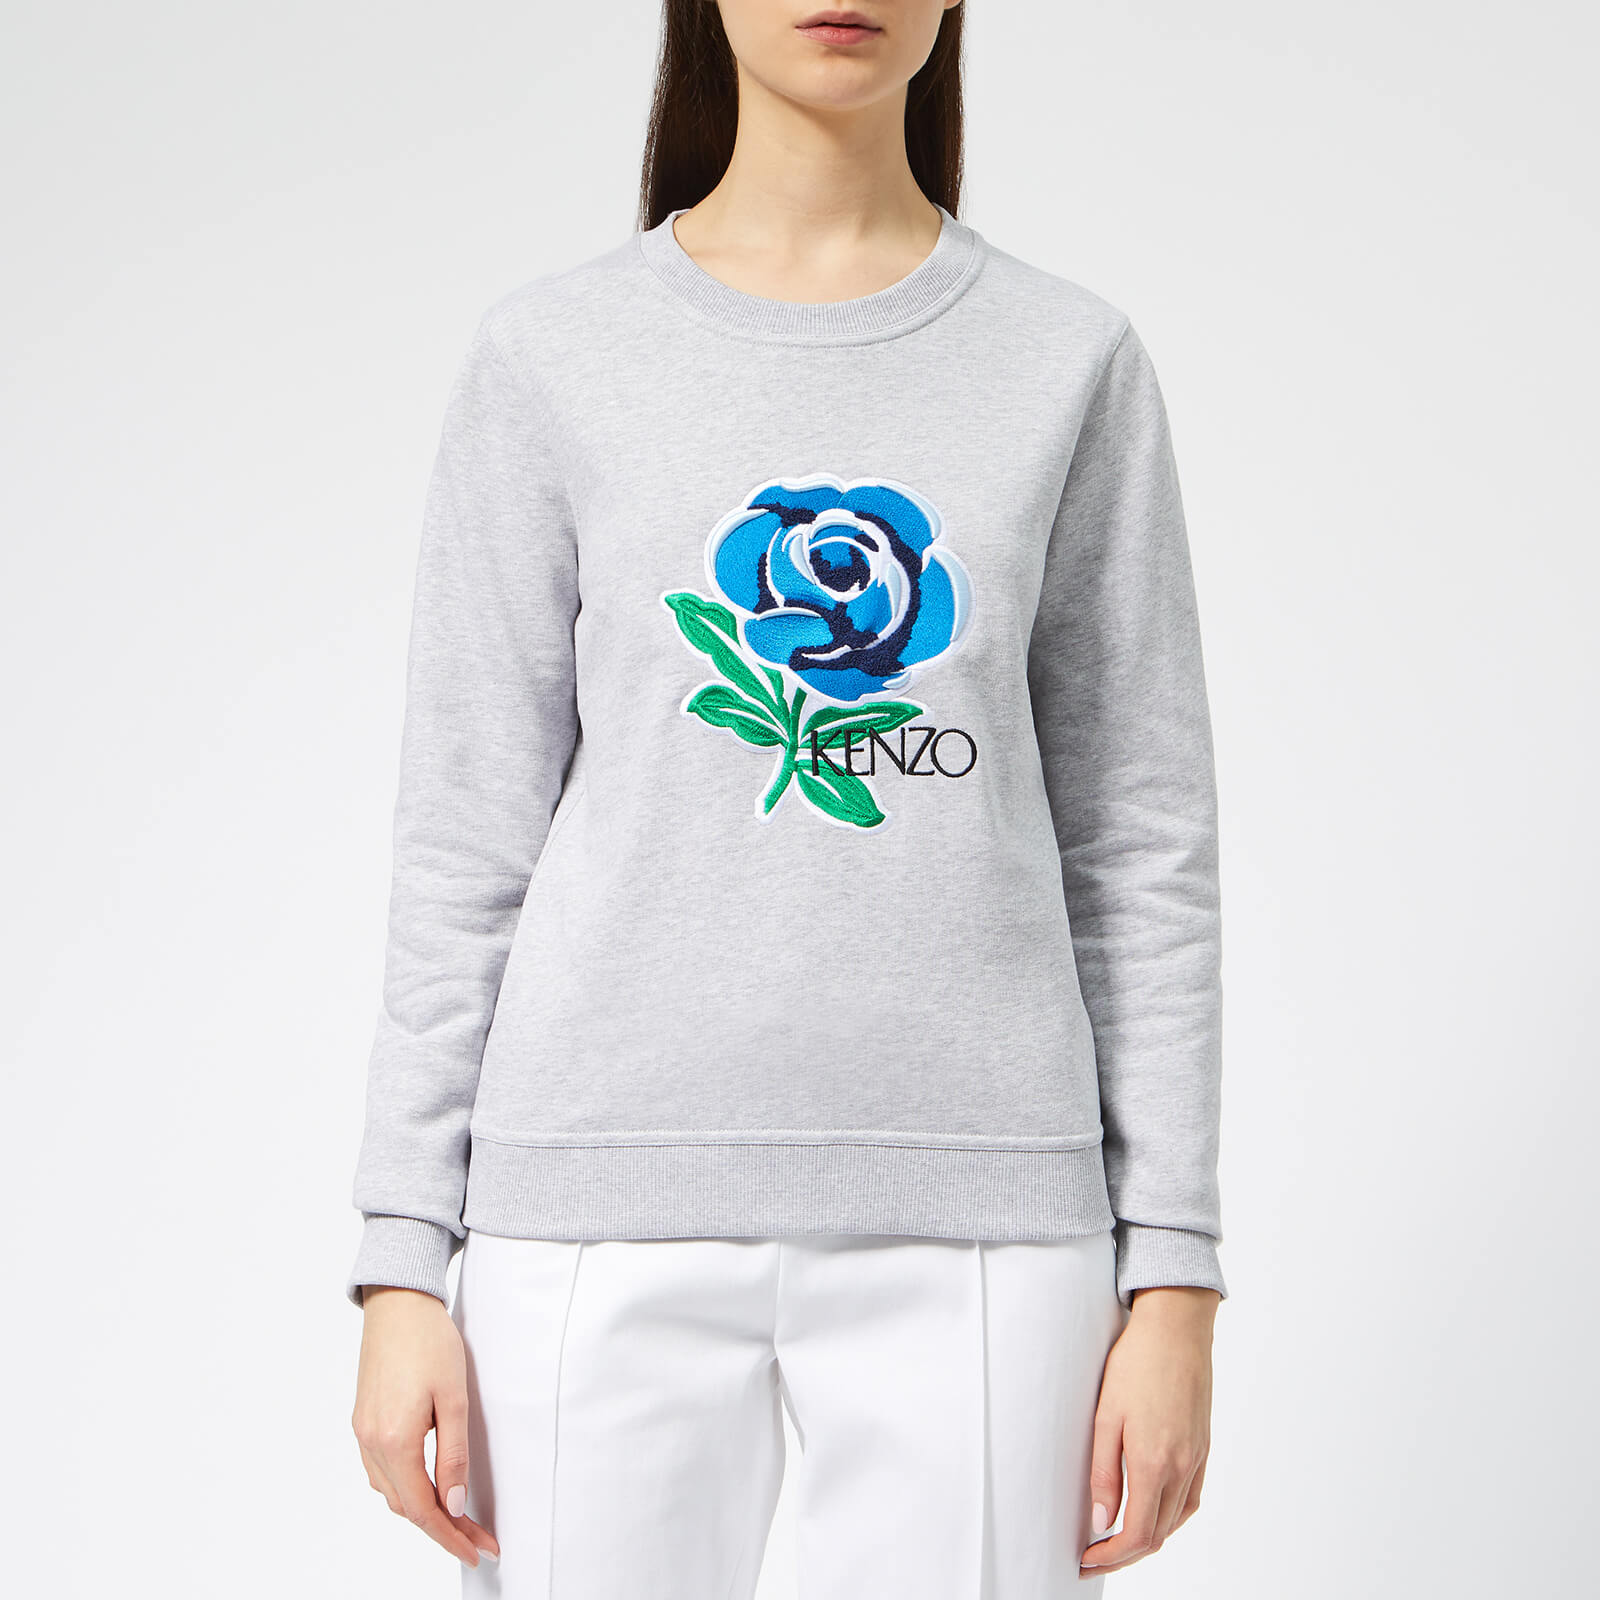 943d956f KENZO Women's Fitted Sweatshirt - Pale Grey - Free UK Delivery over £50